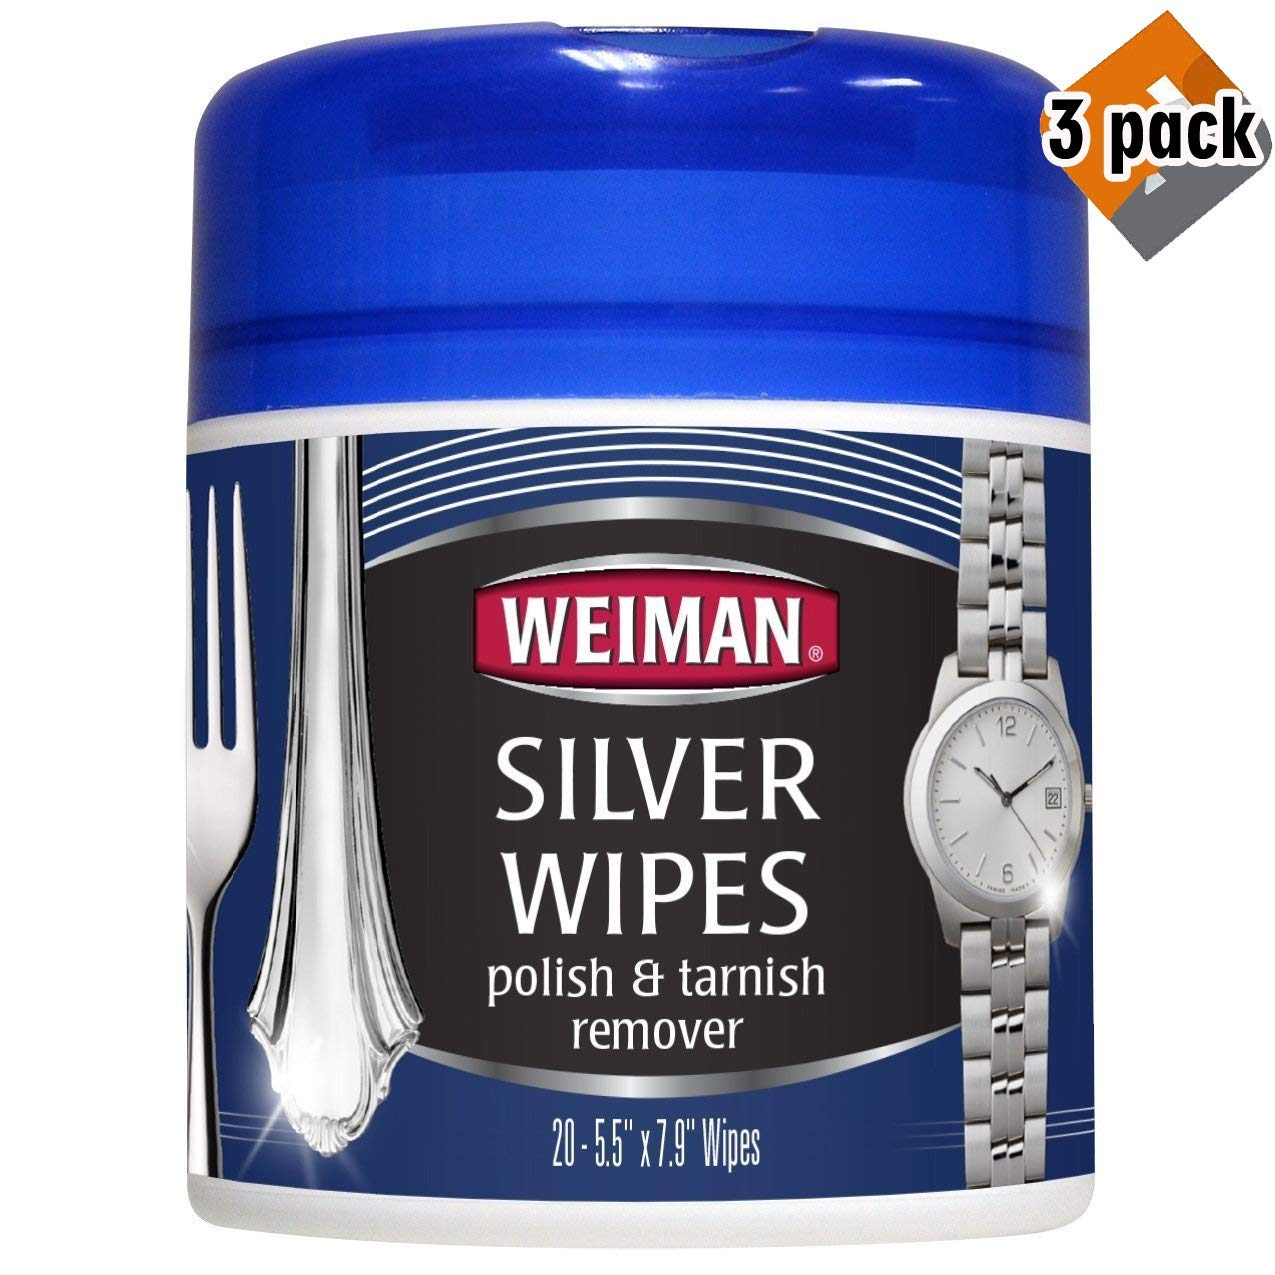 Silver Wipes - Jewelry Wipes - Cleaner and Polisher for Silver Jewelry Sterling Silver Silver Plate and Fine Antique Silver - 20 Count - Ammonia Free - 3-Pack